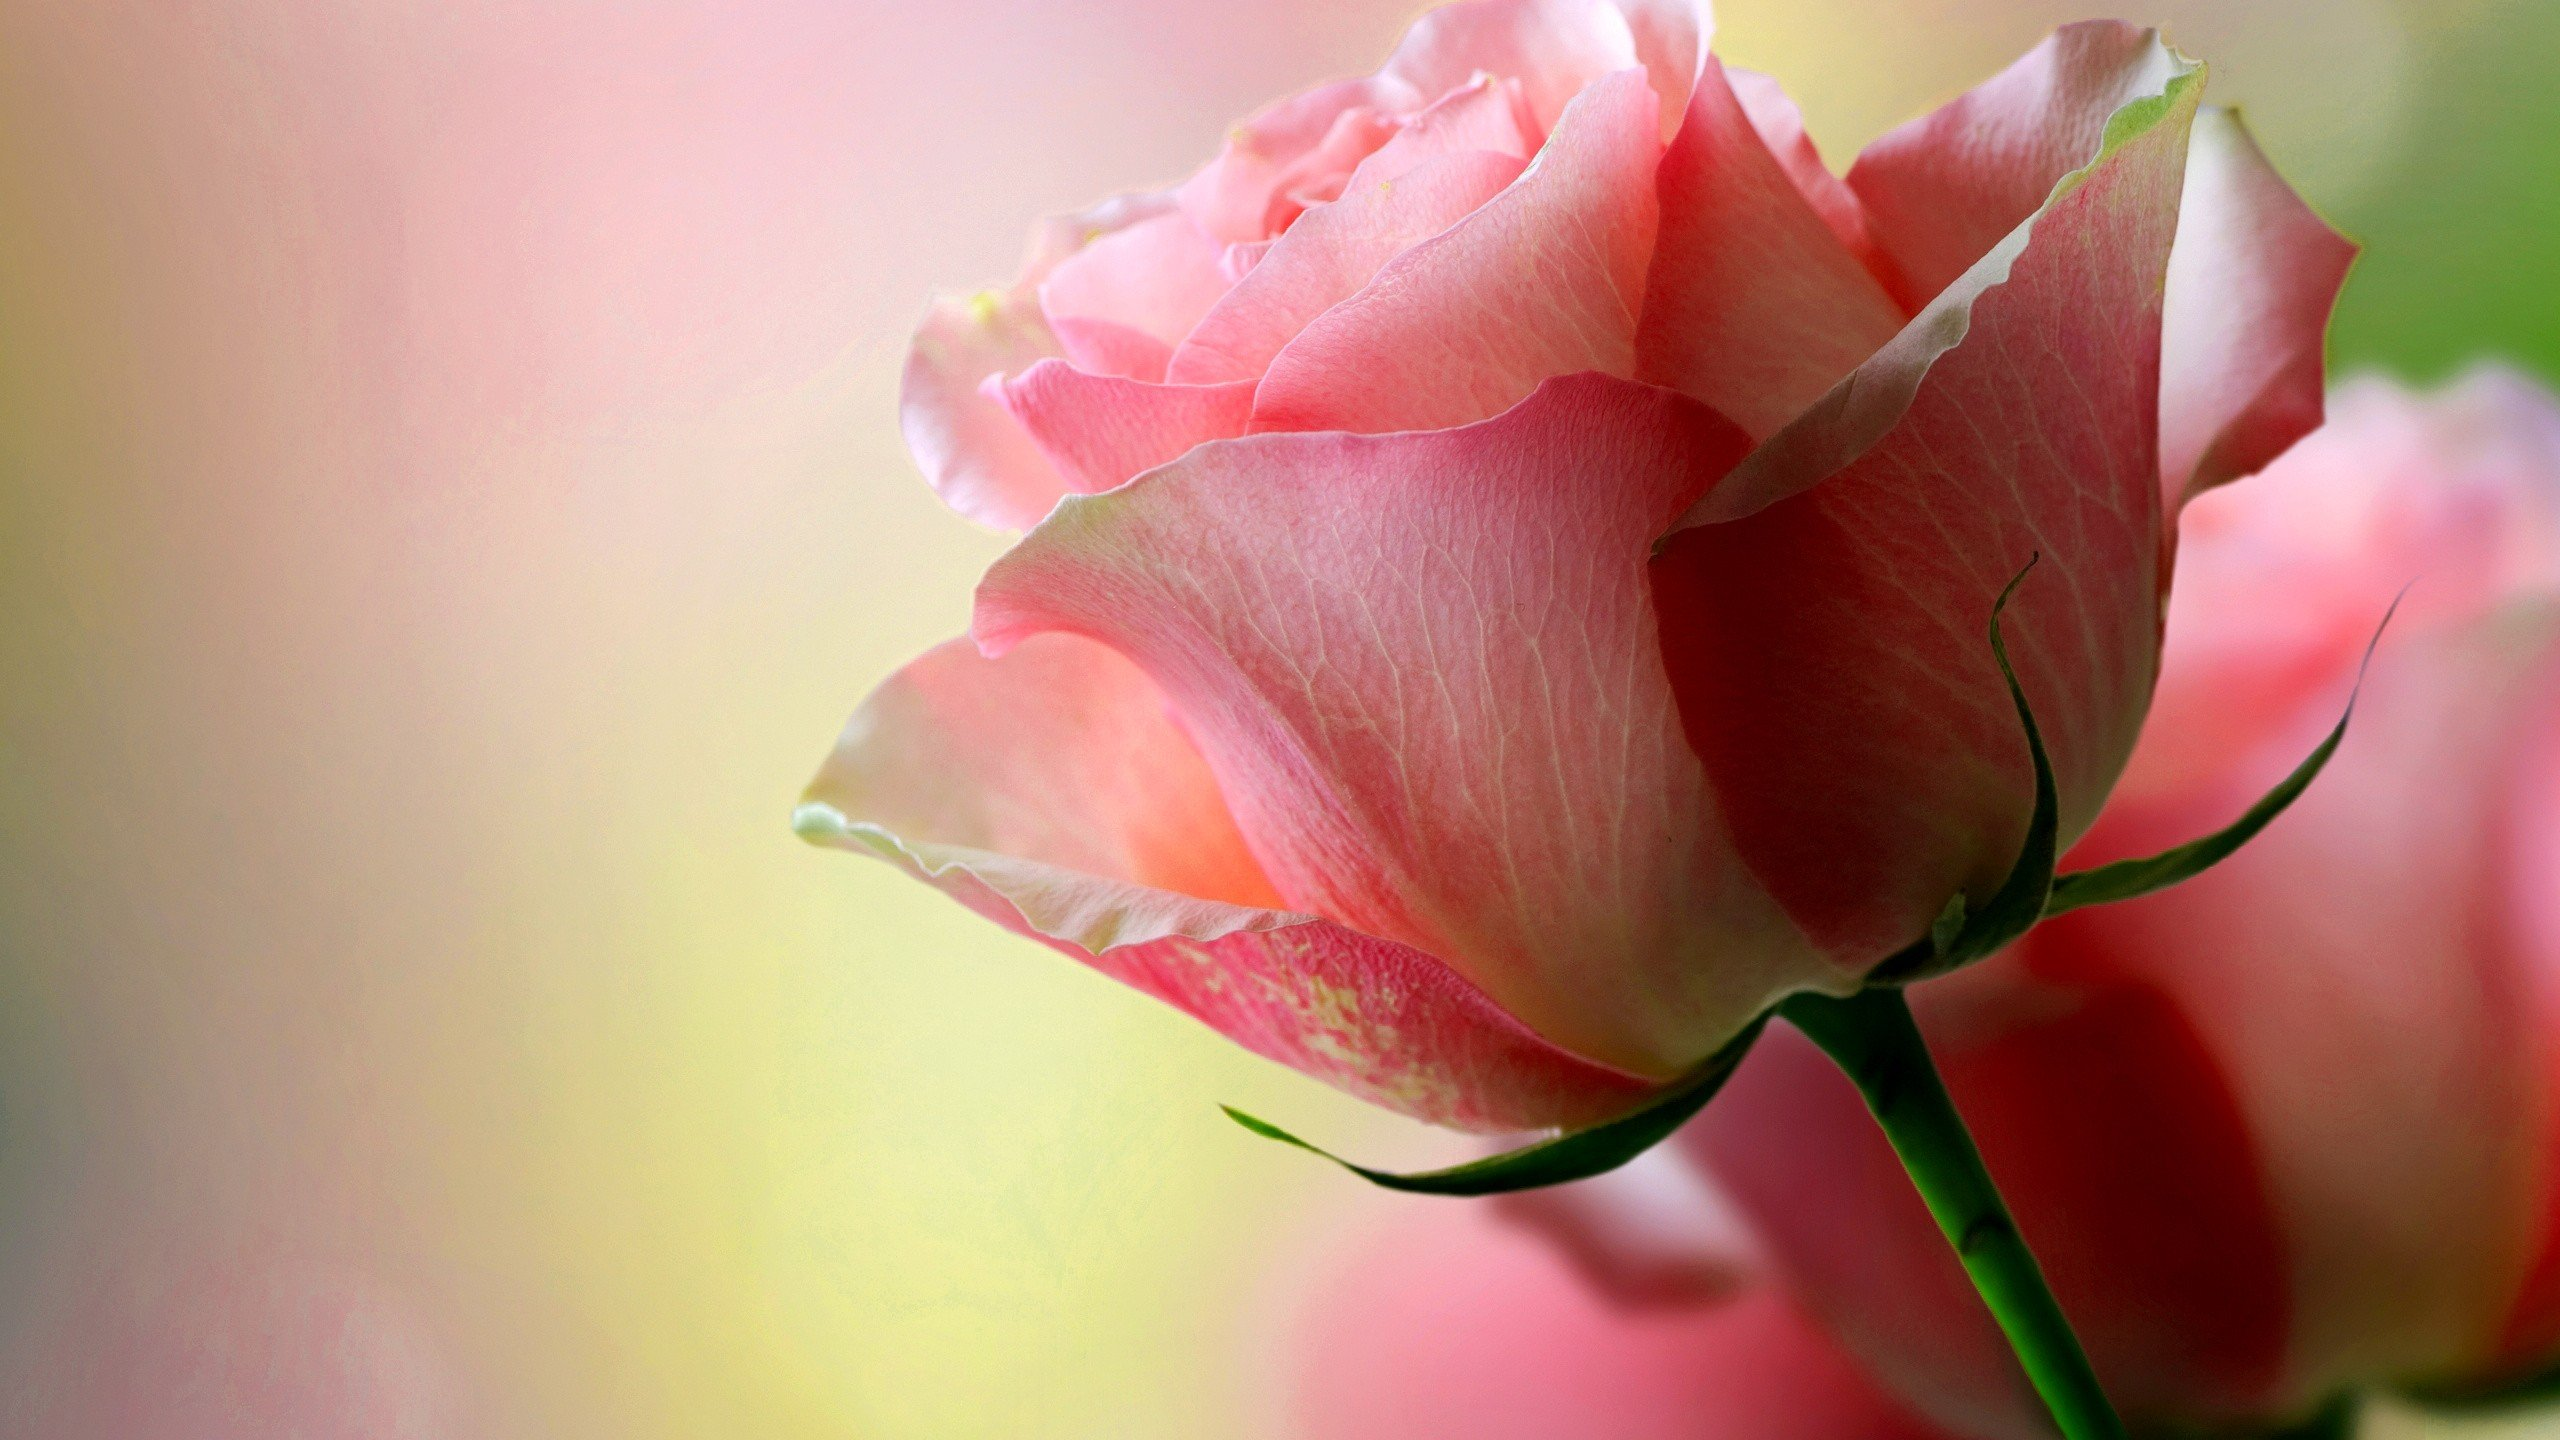 Rose pink roses hd wallpapers desktop and mobile images - Rose flowers wallpaper for mobile ...